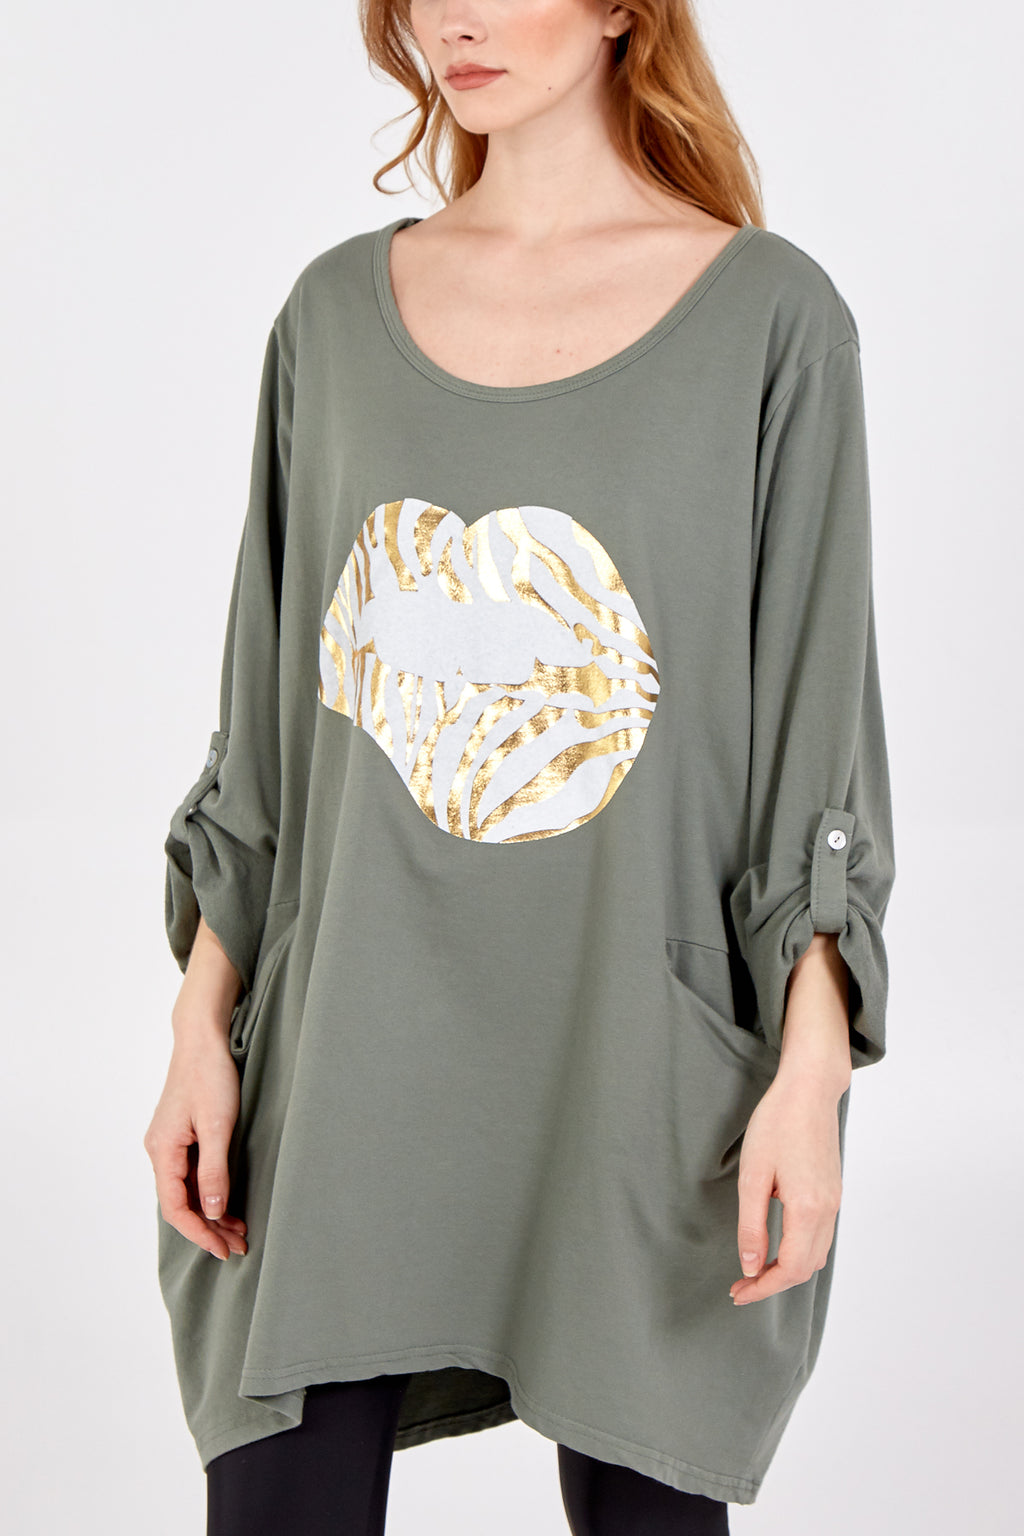 Zebra Pattern Gold Lips Turn Up Button Top